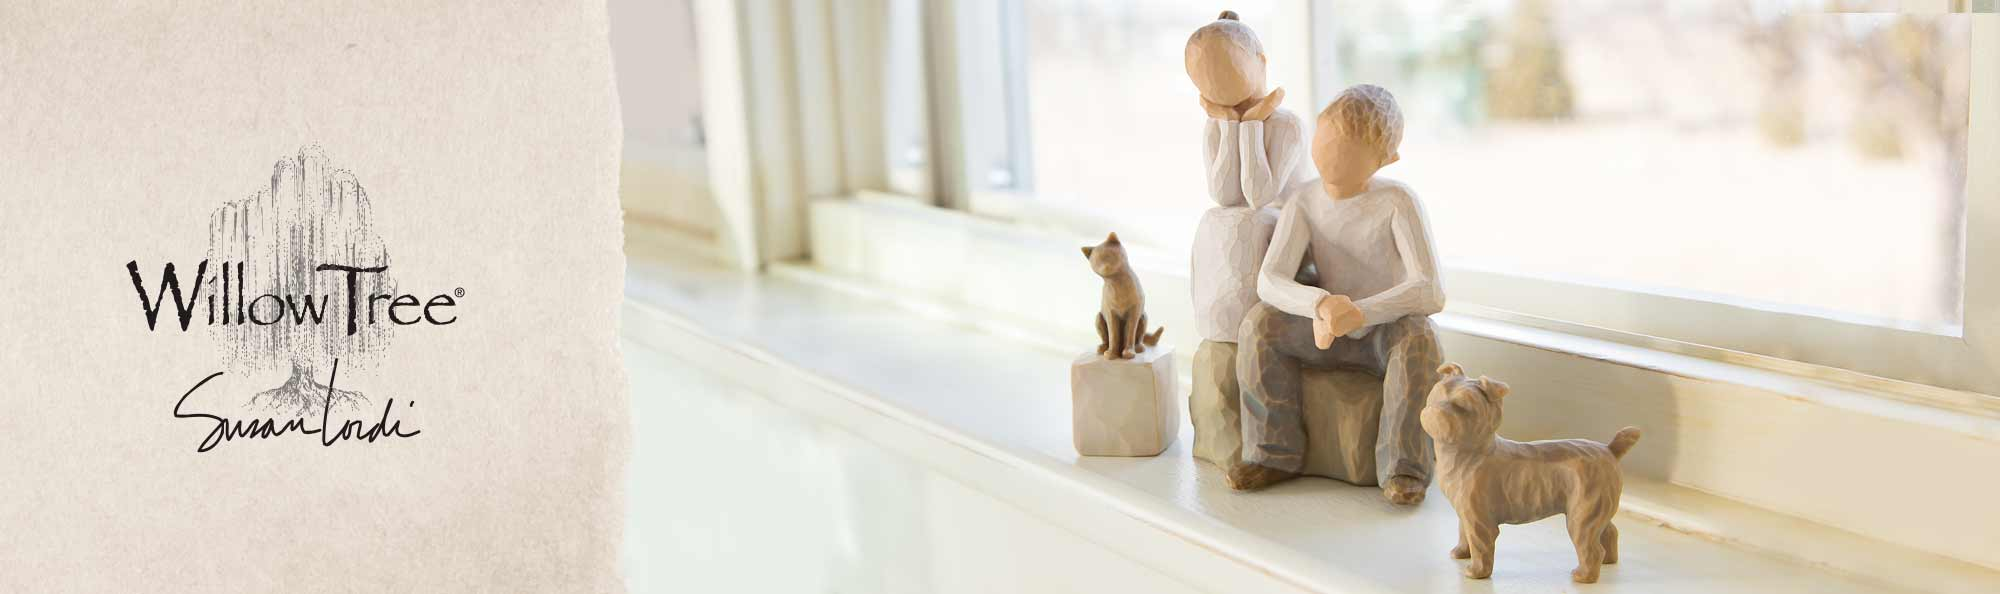 Willow Tree by Susan Lordi. Hand carved figurines of a cat and dog with two children.